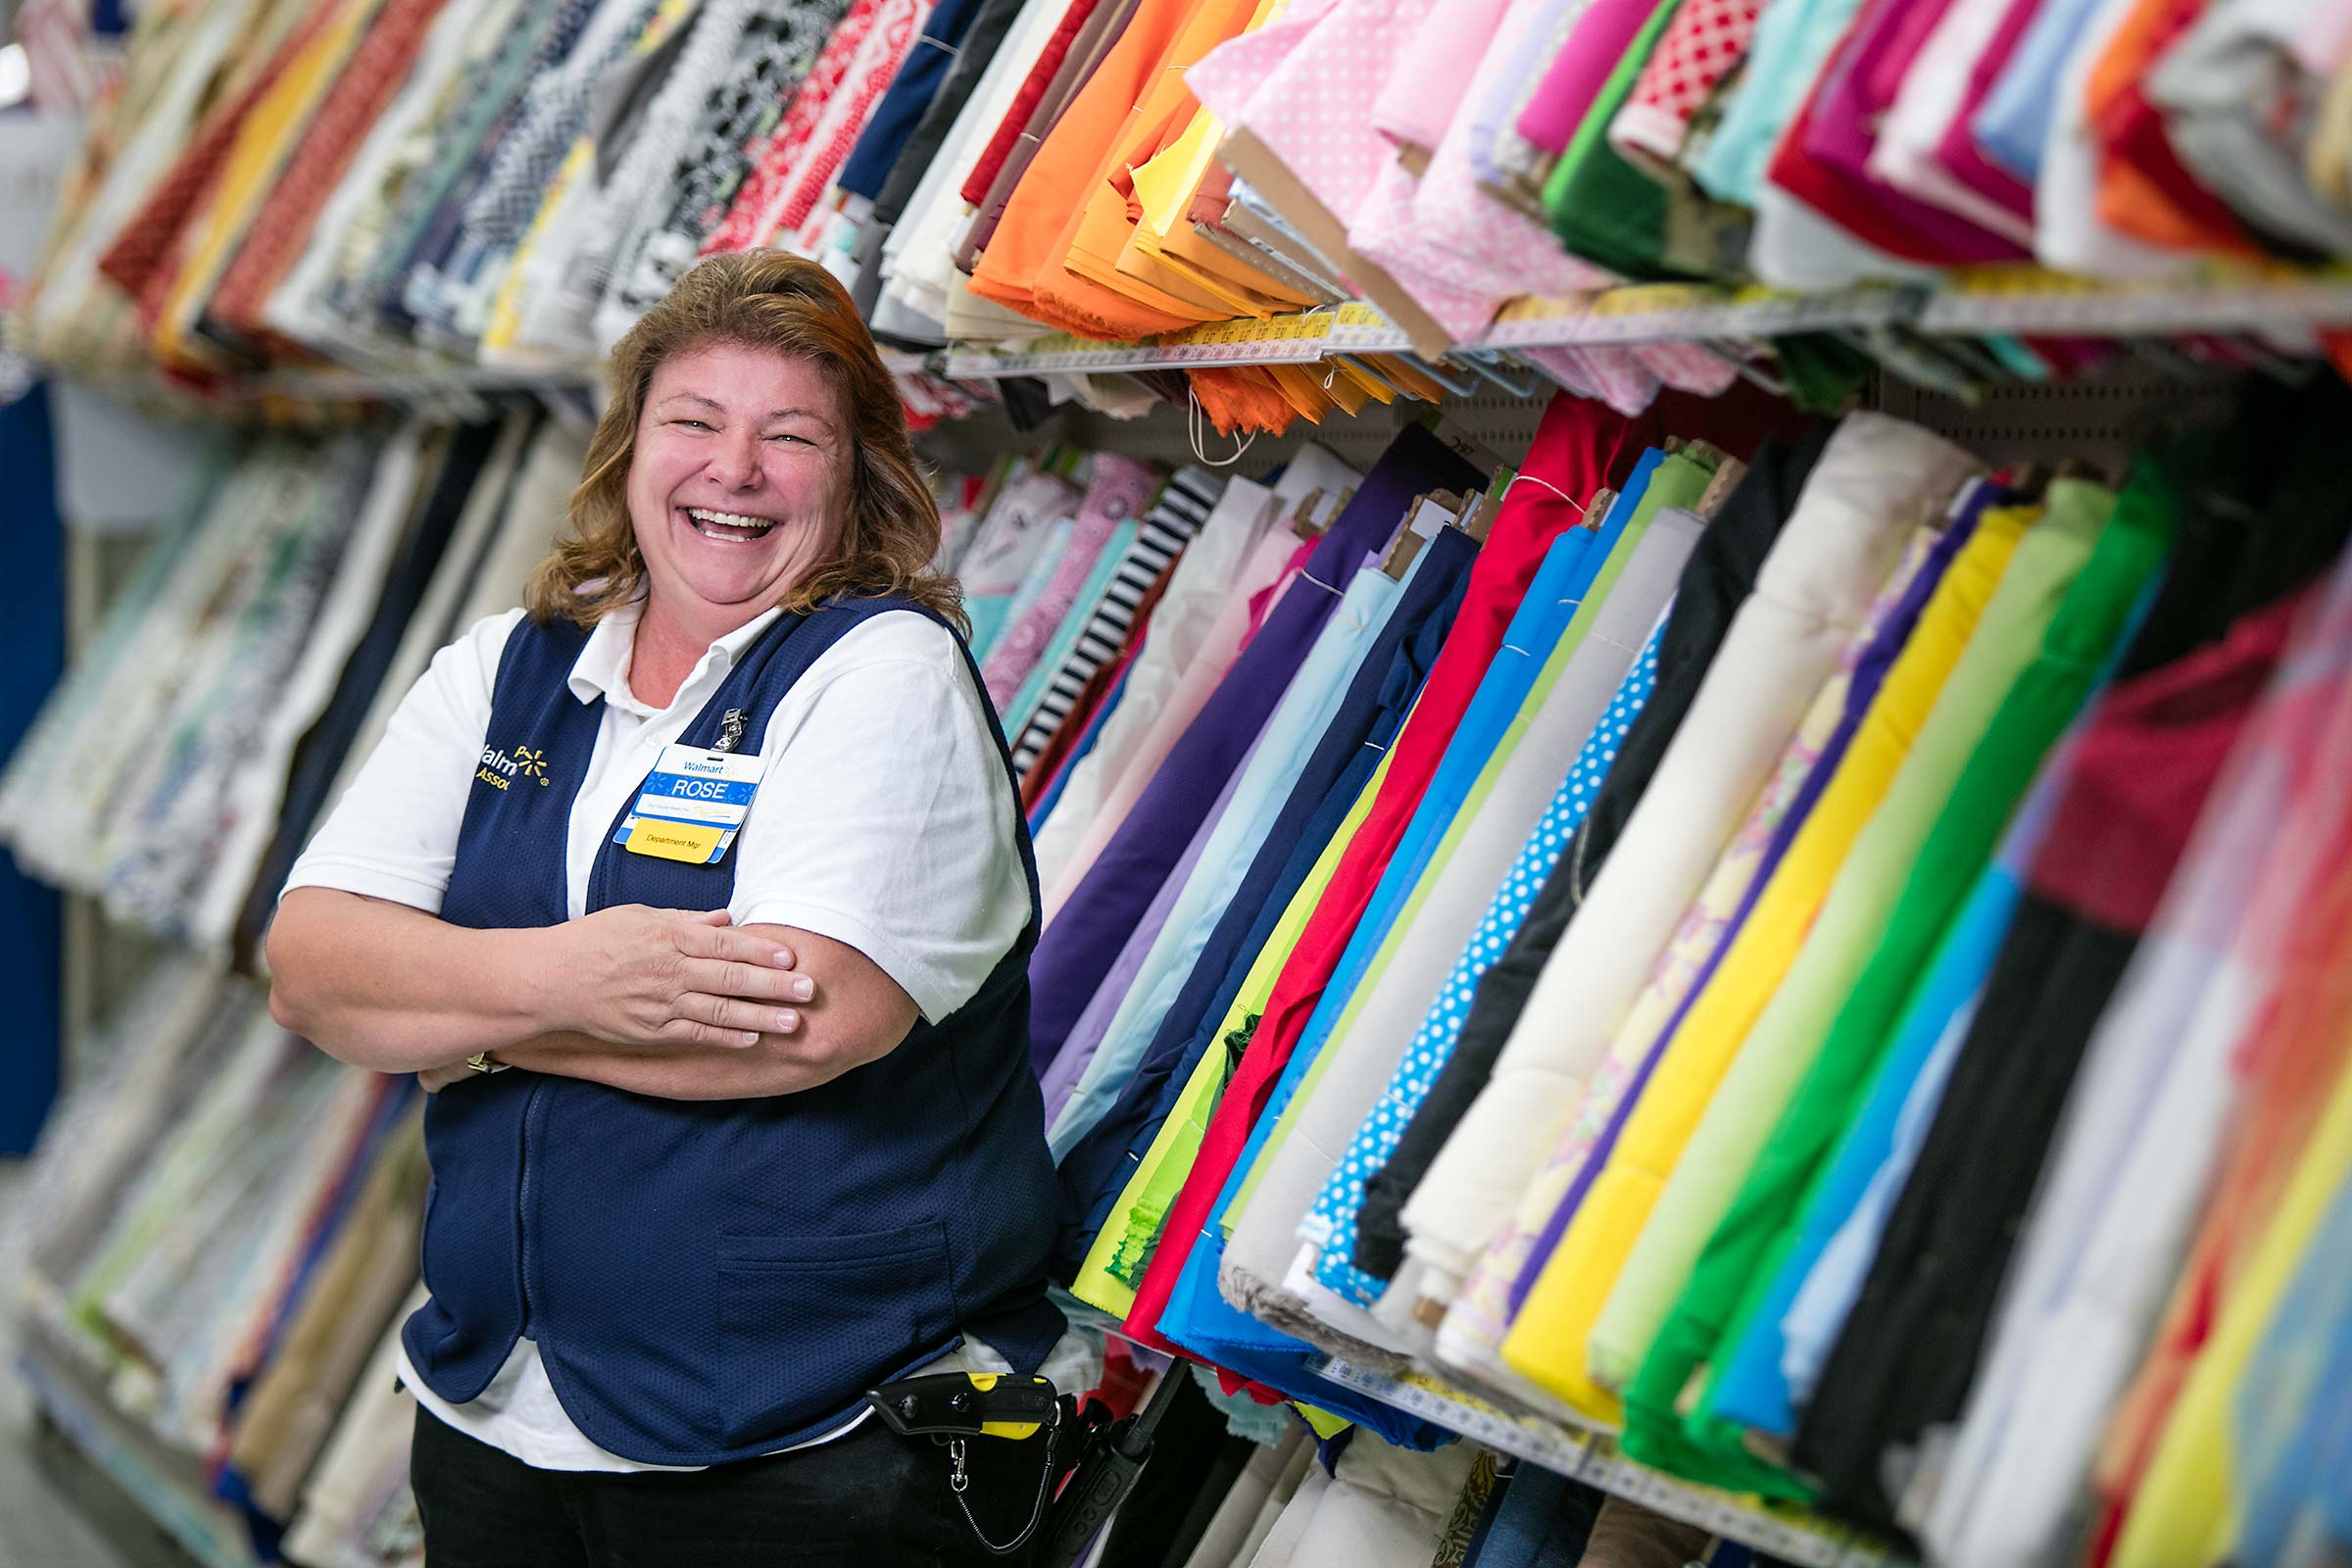 A retail employee laughing in a store aisle while at work